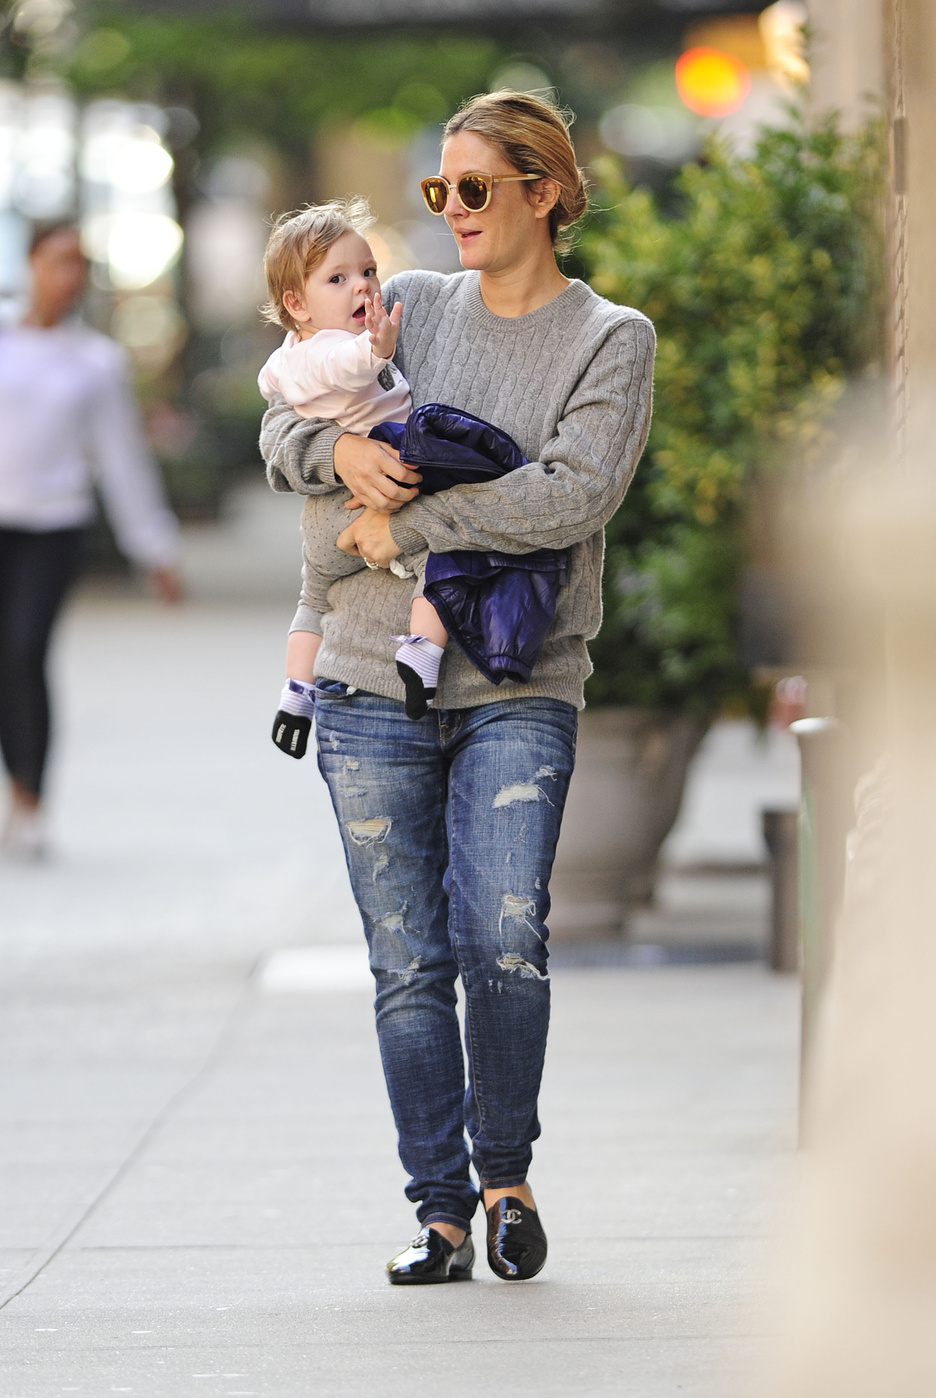 Drew Barrymore Hangs With Baby Olive After a Big Night at the Ballet